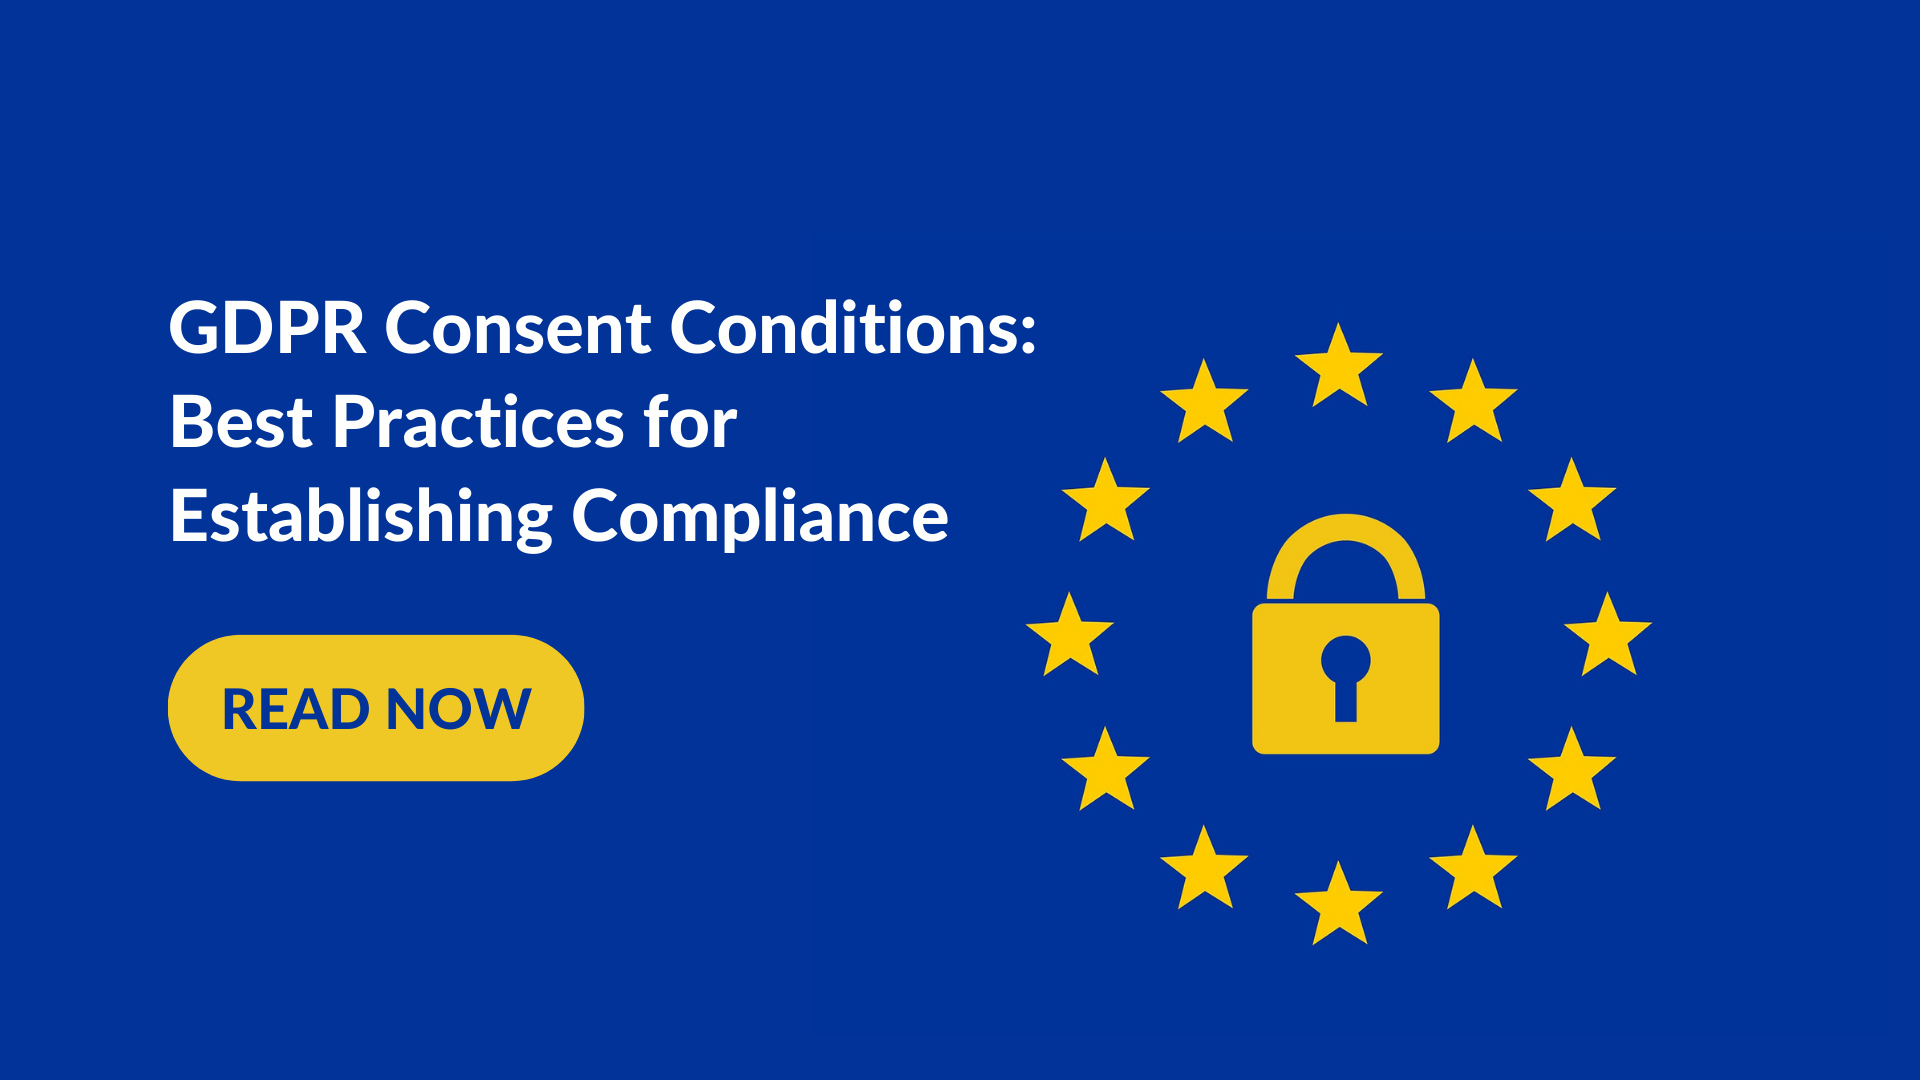 GDPR Consent Conditions: Best Practices for Establishing Compliance